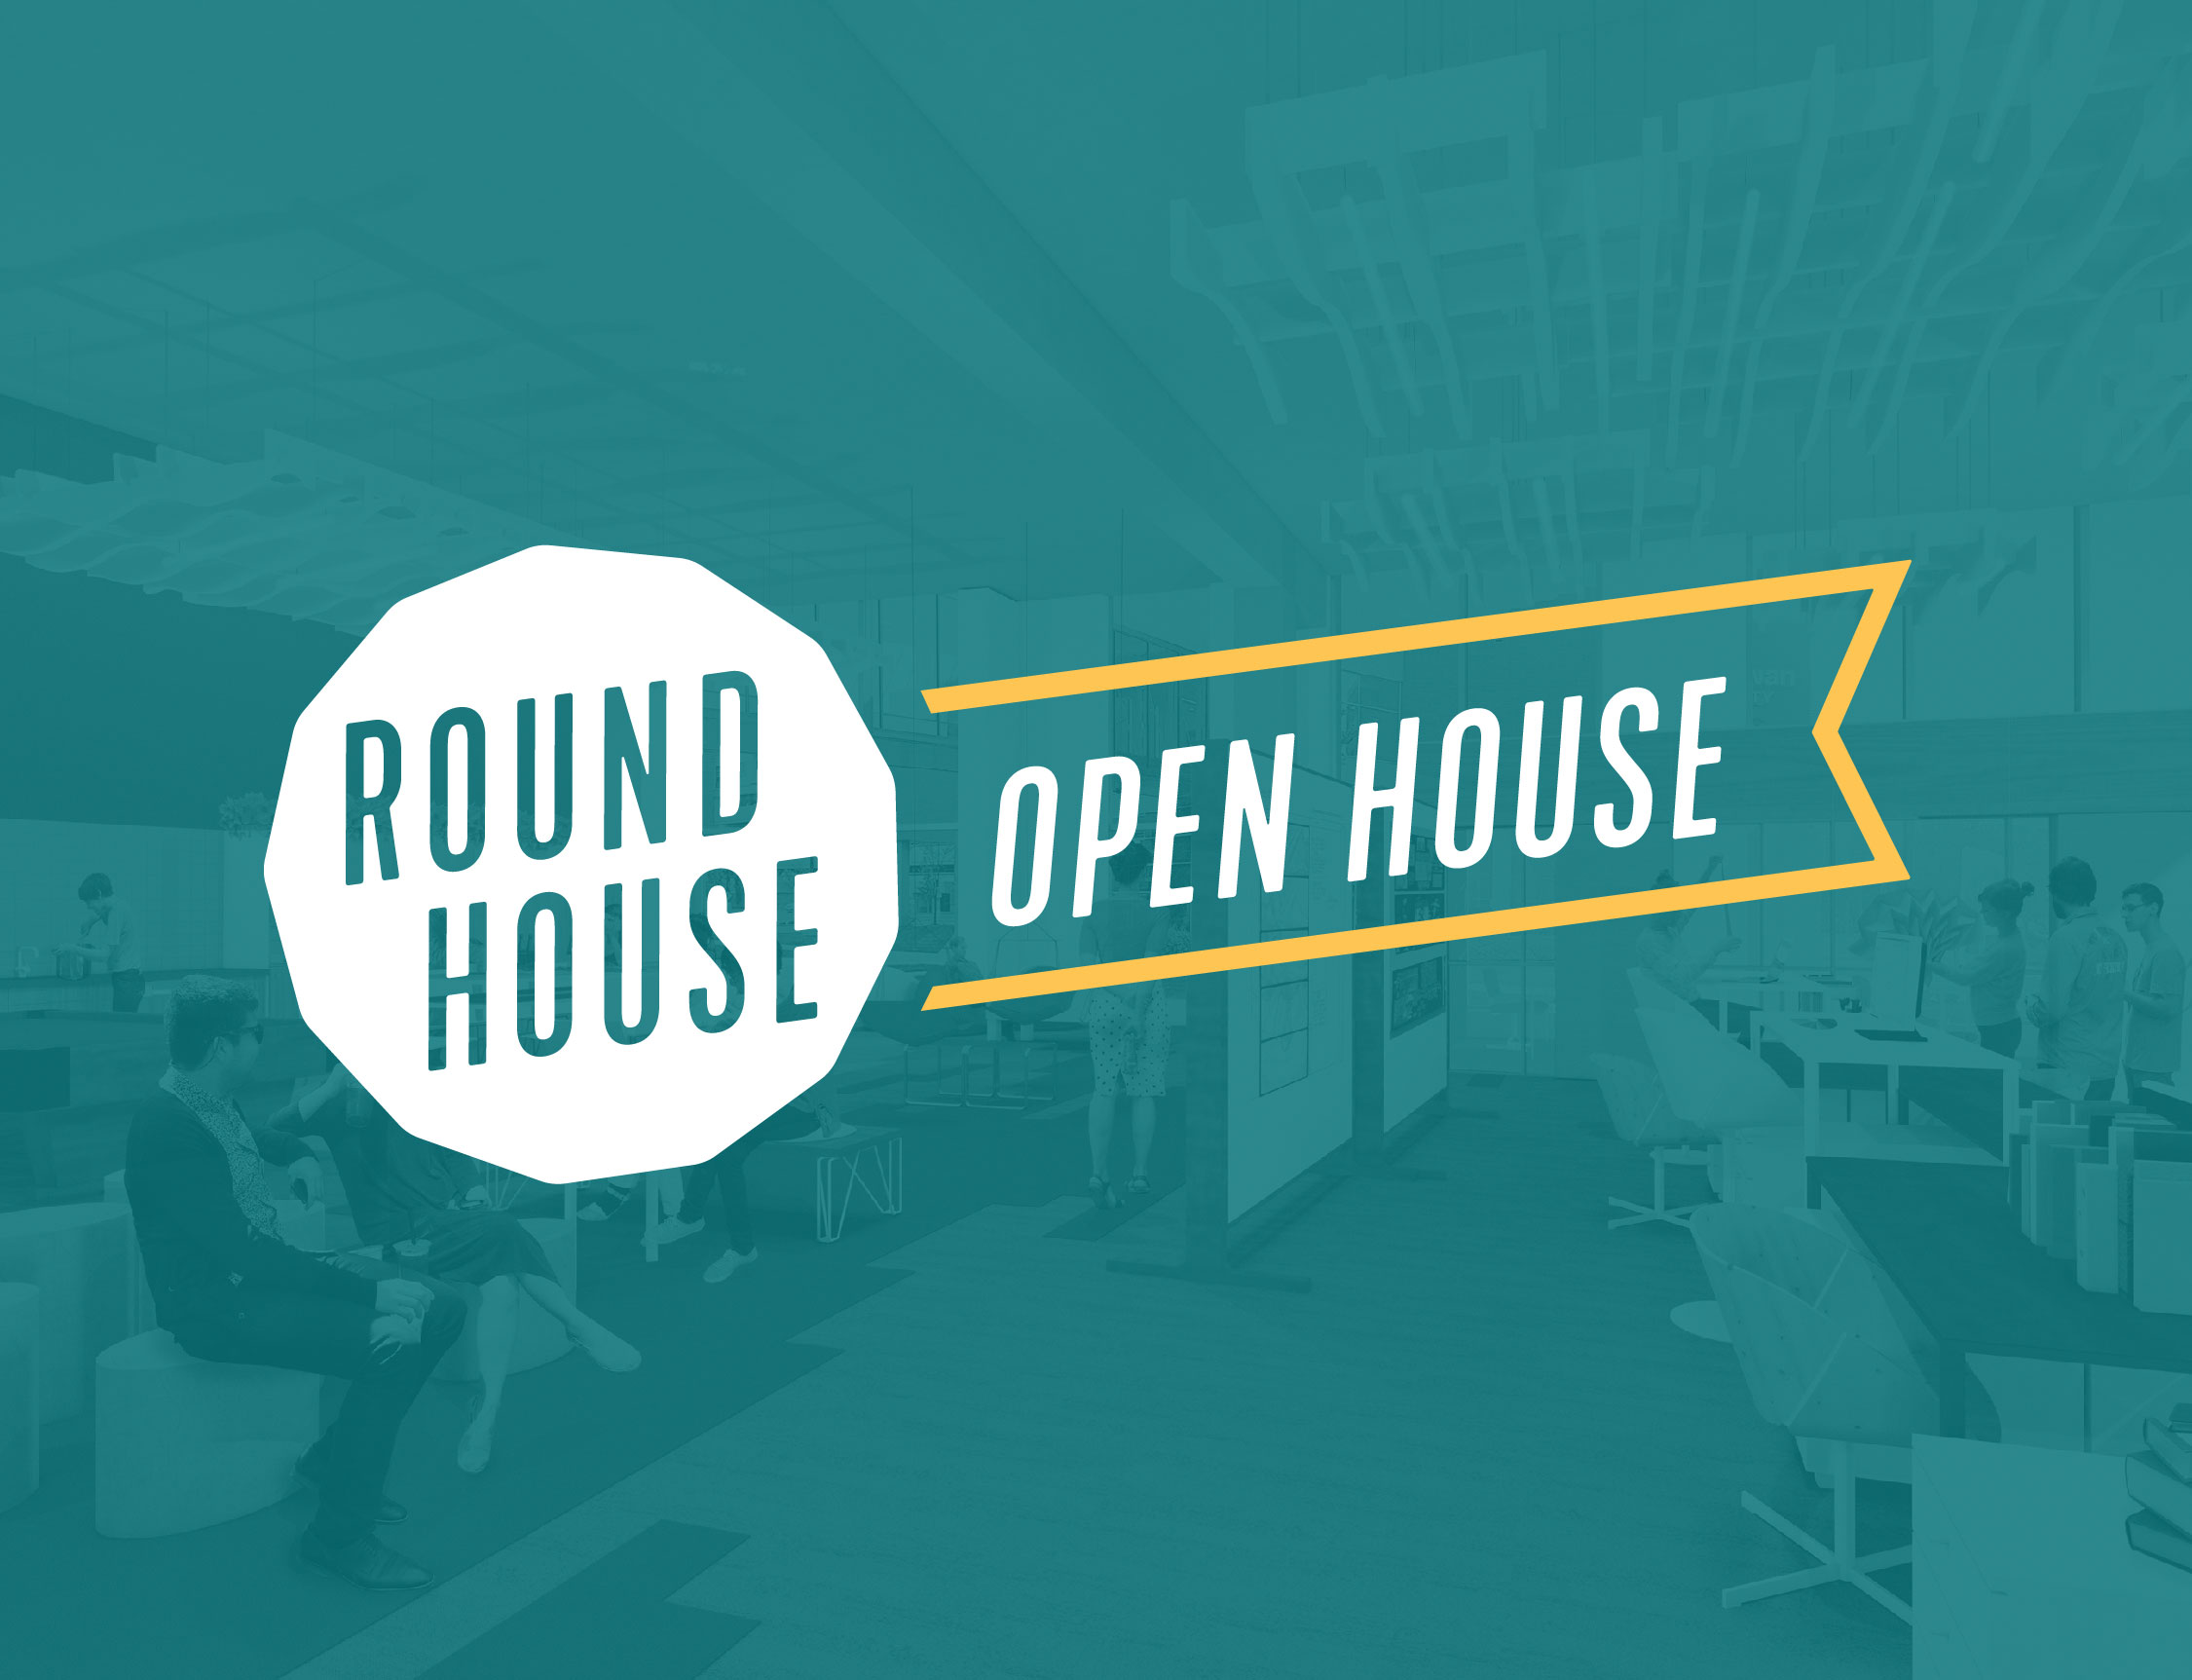 Roundhouse Open House